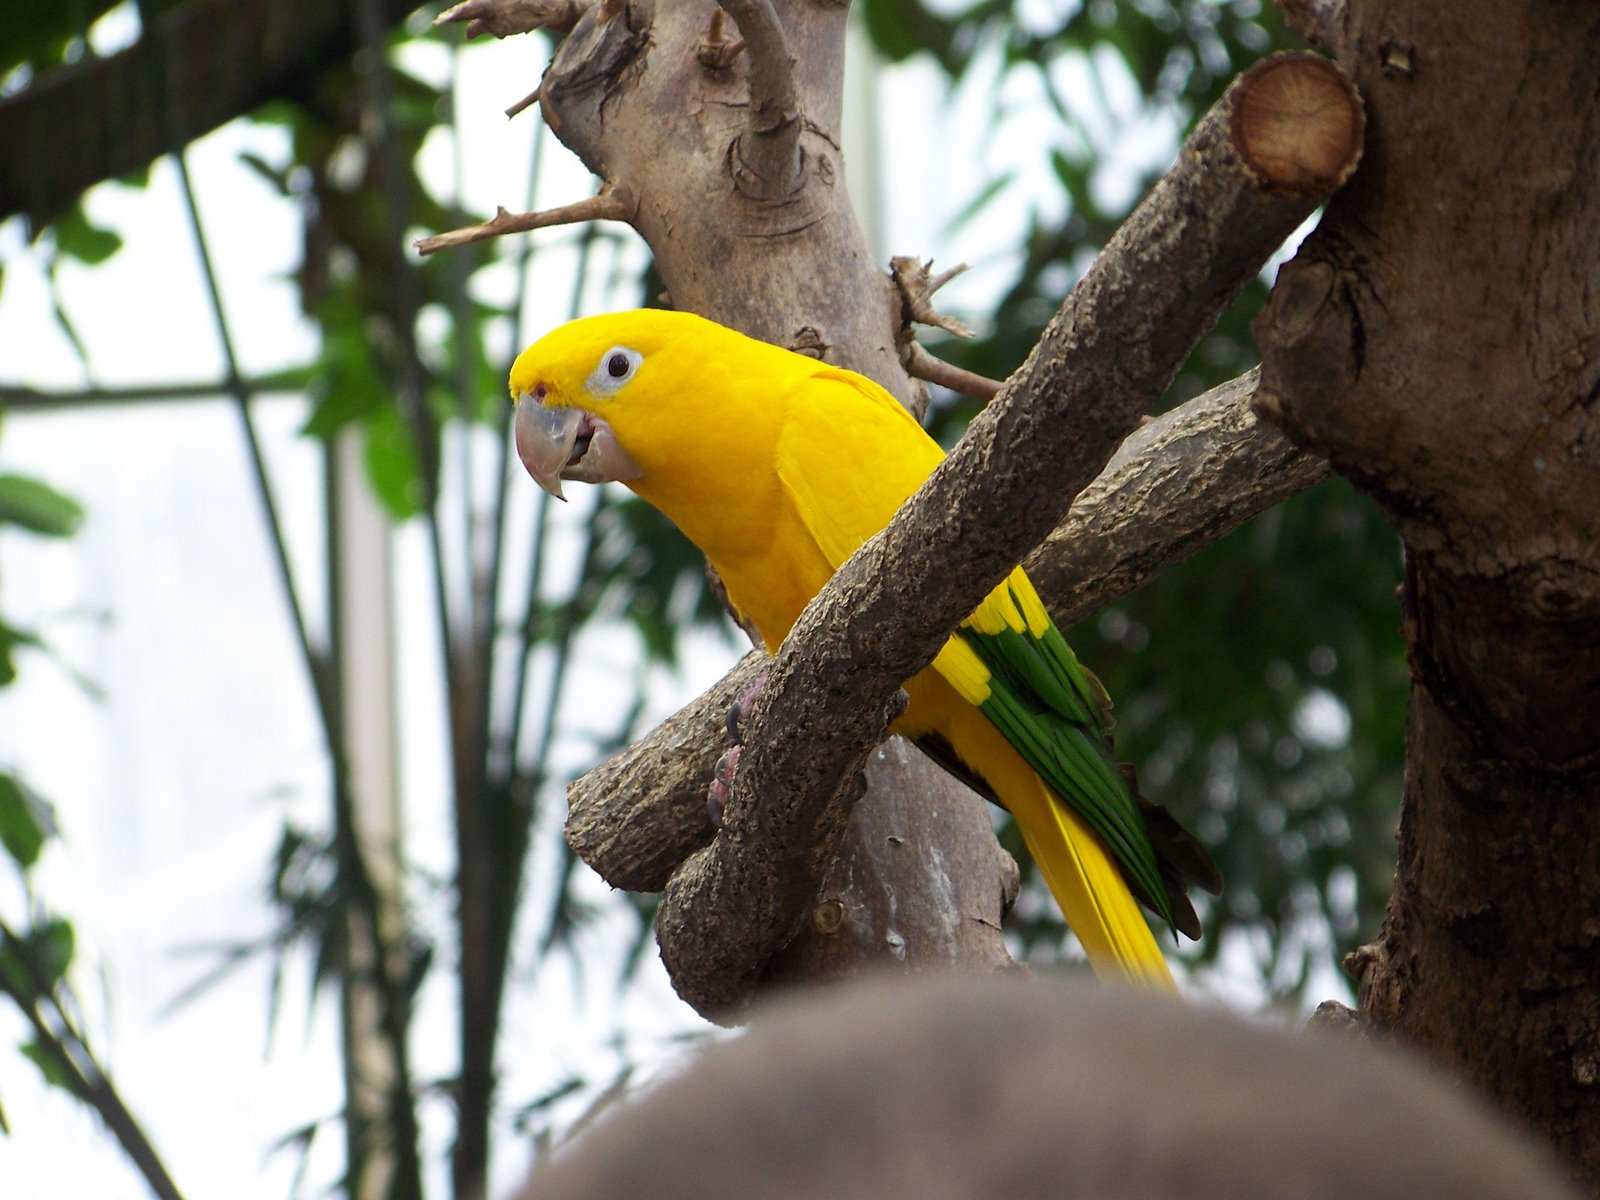 Rare Green And Yellow Quaker? - Quaker Parrot Talk ...